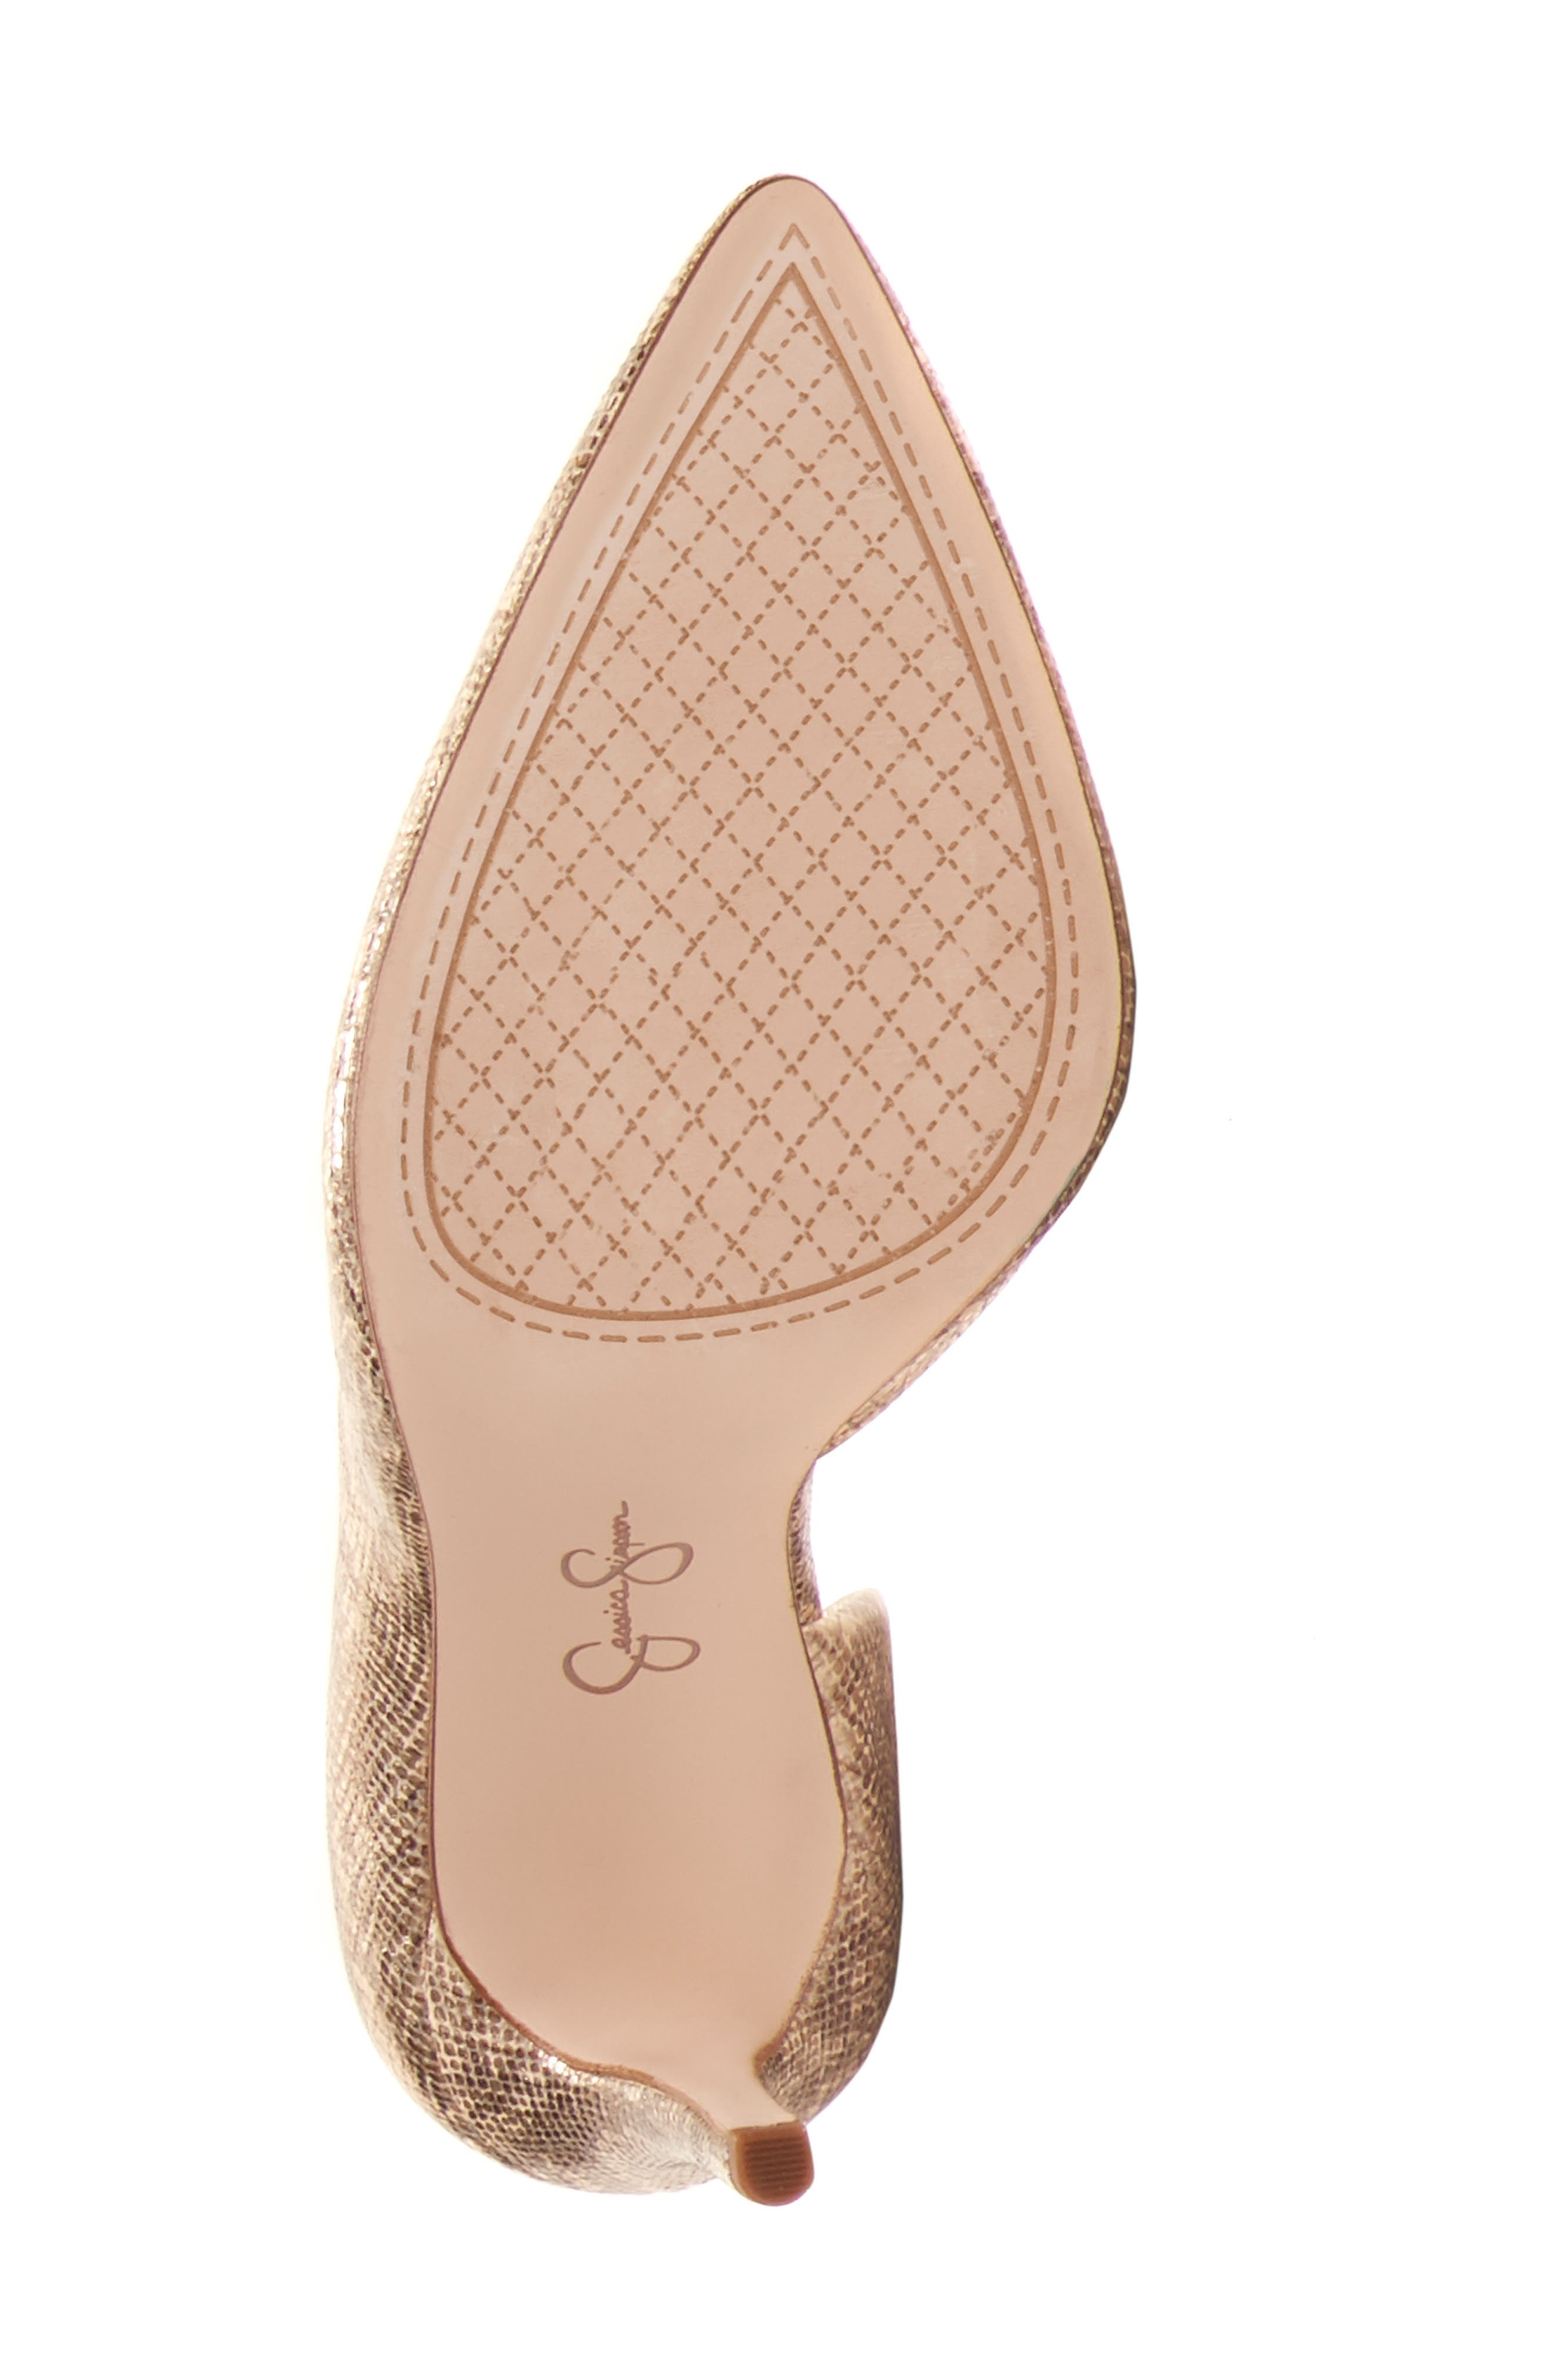 JESSICA SIMPSON,                             Pheona Pump,                             Alternate thumbnail 5, color,                             KARAT GOLD